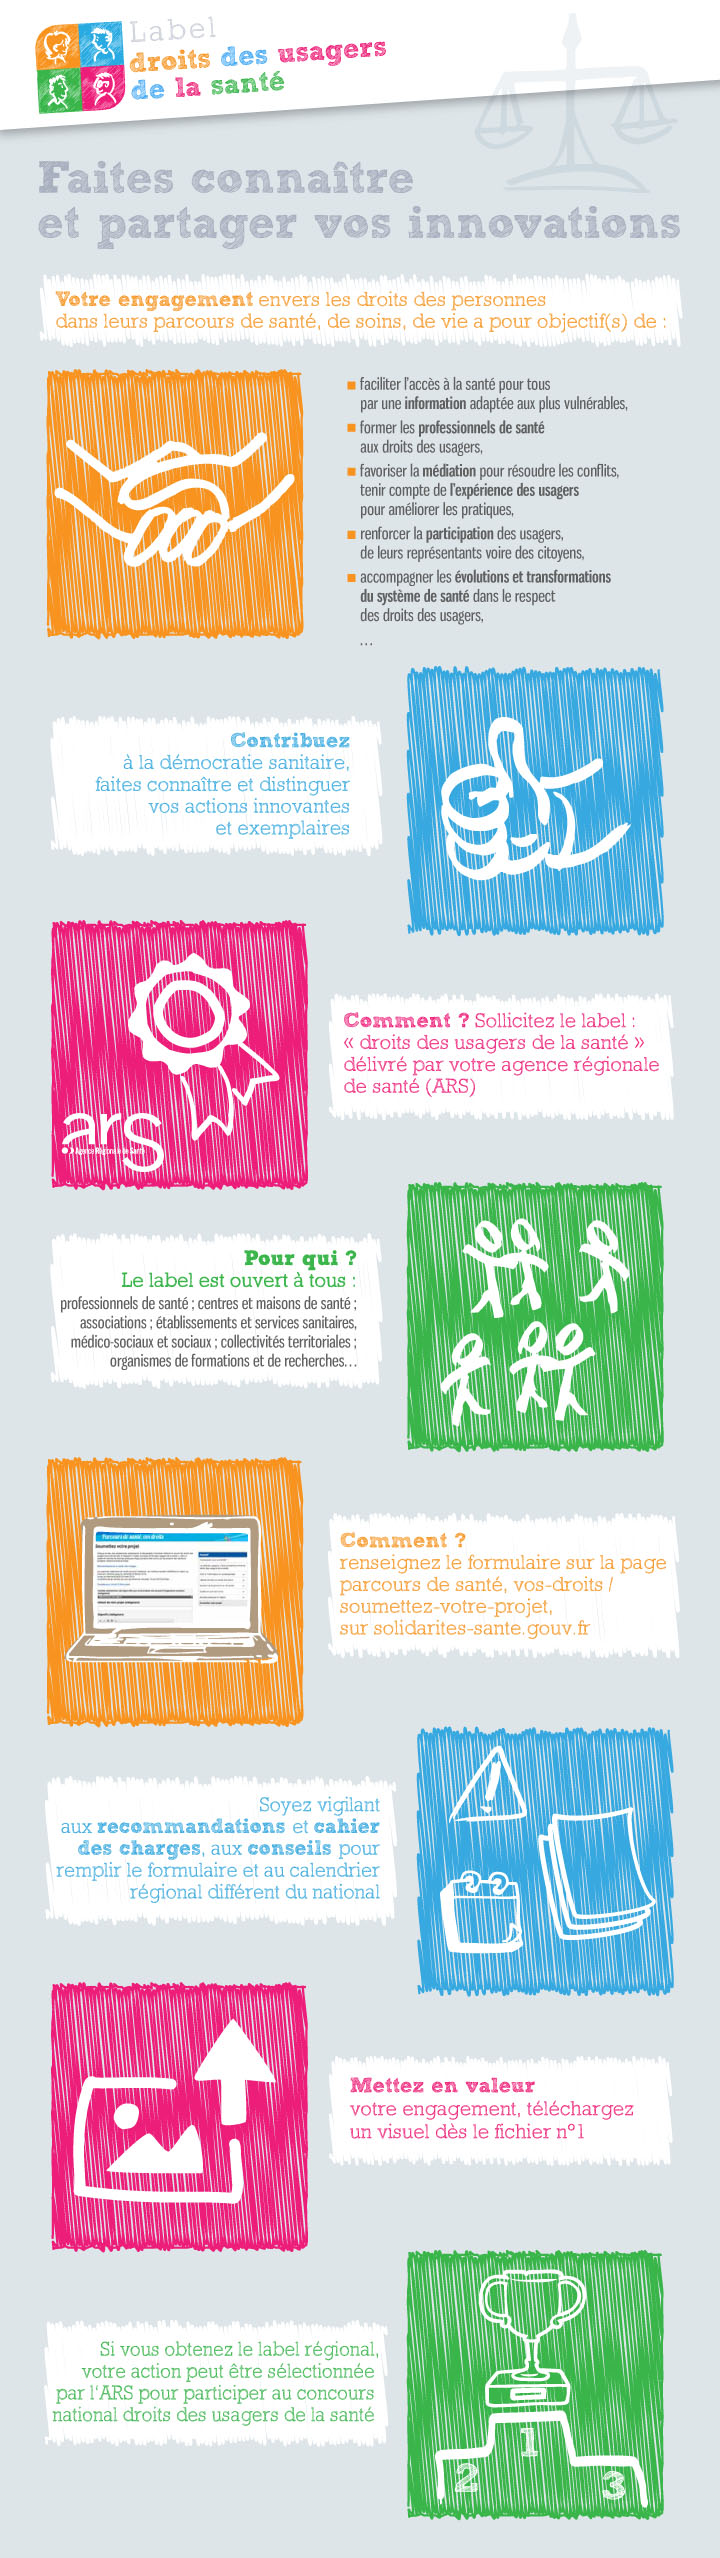 Infographie_Label-droits-usagers_2019-2020